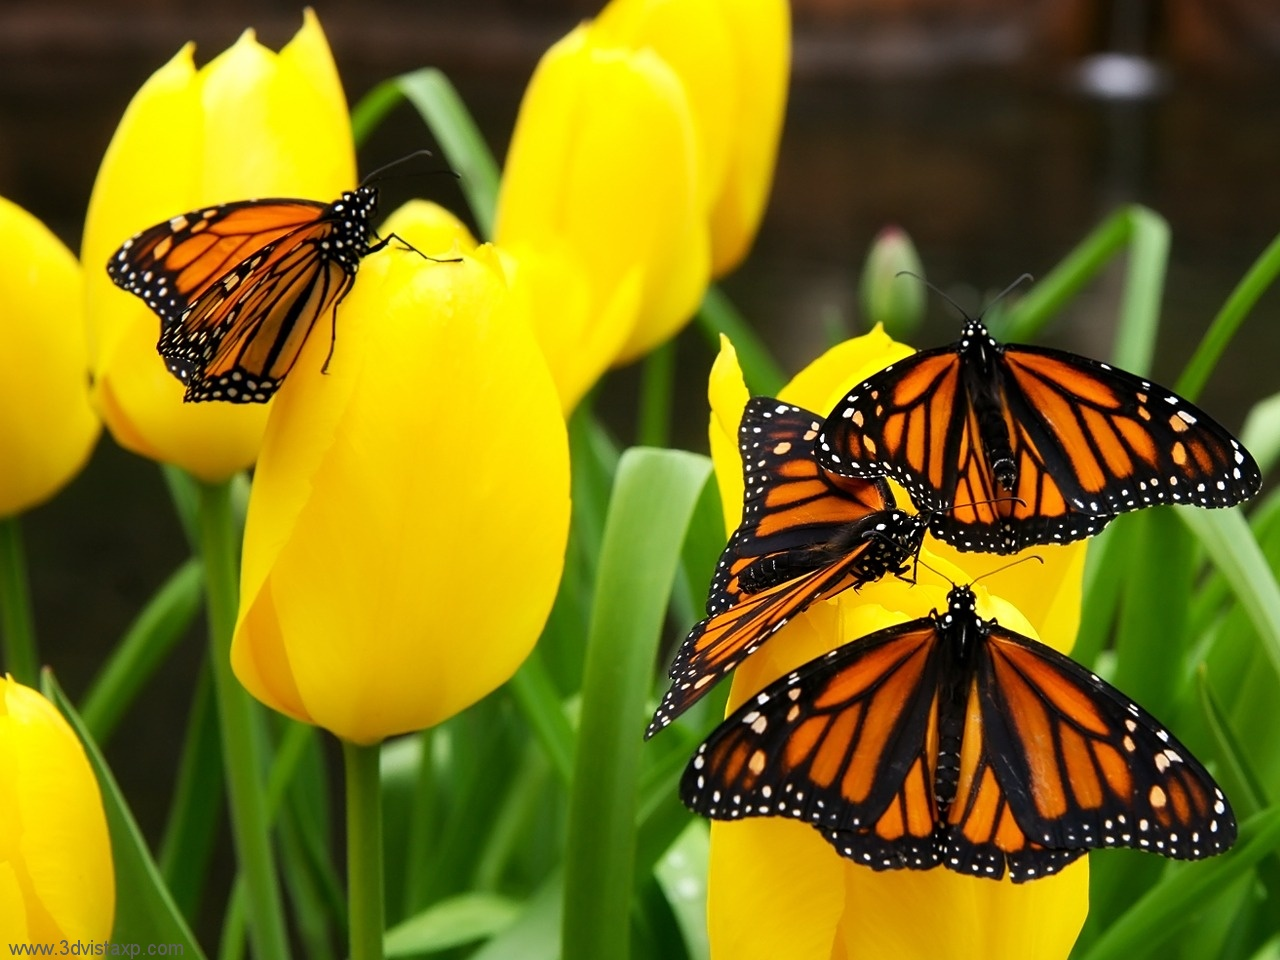 Cute Piglets Wallpaper Beautiful Butterfly Picutres Cini Clips